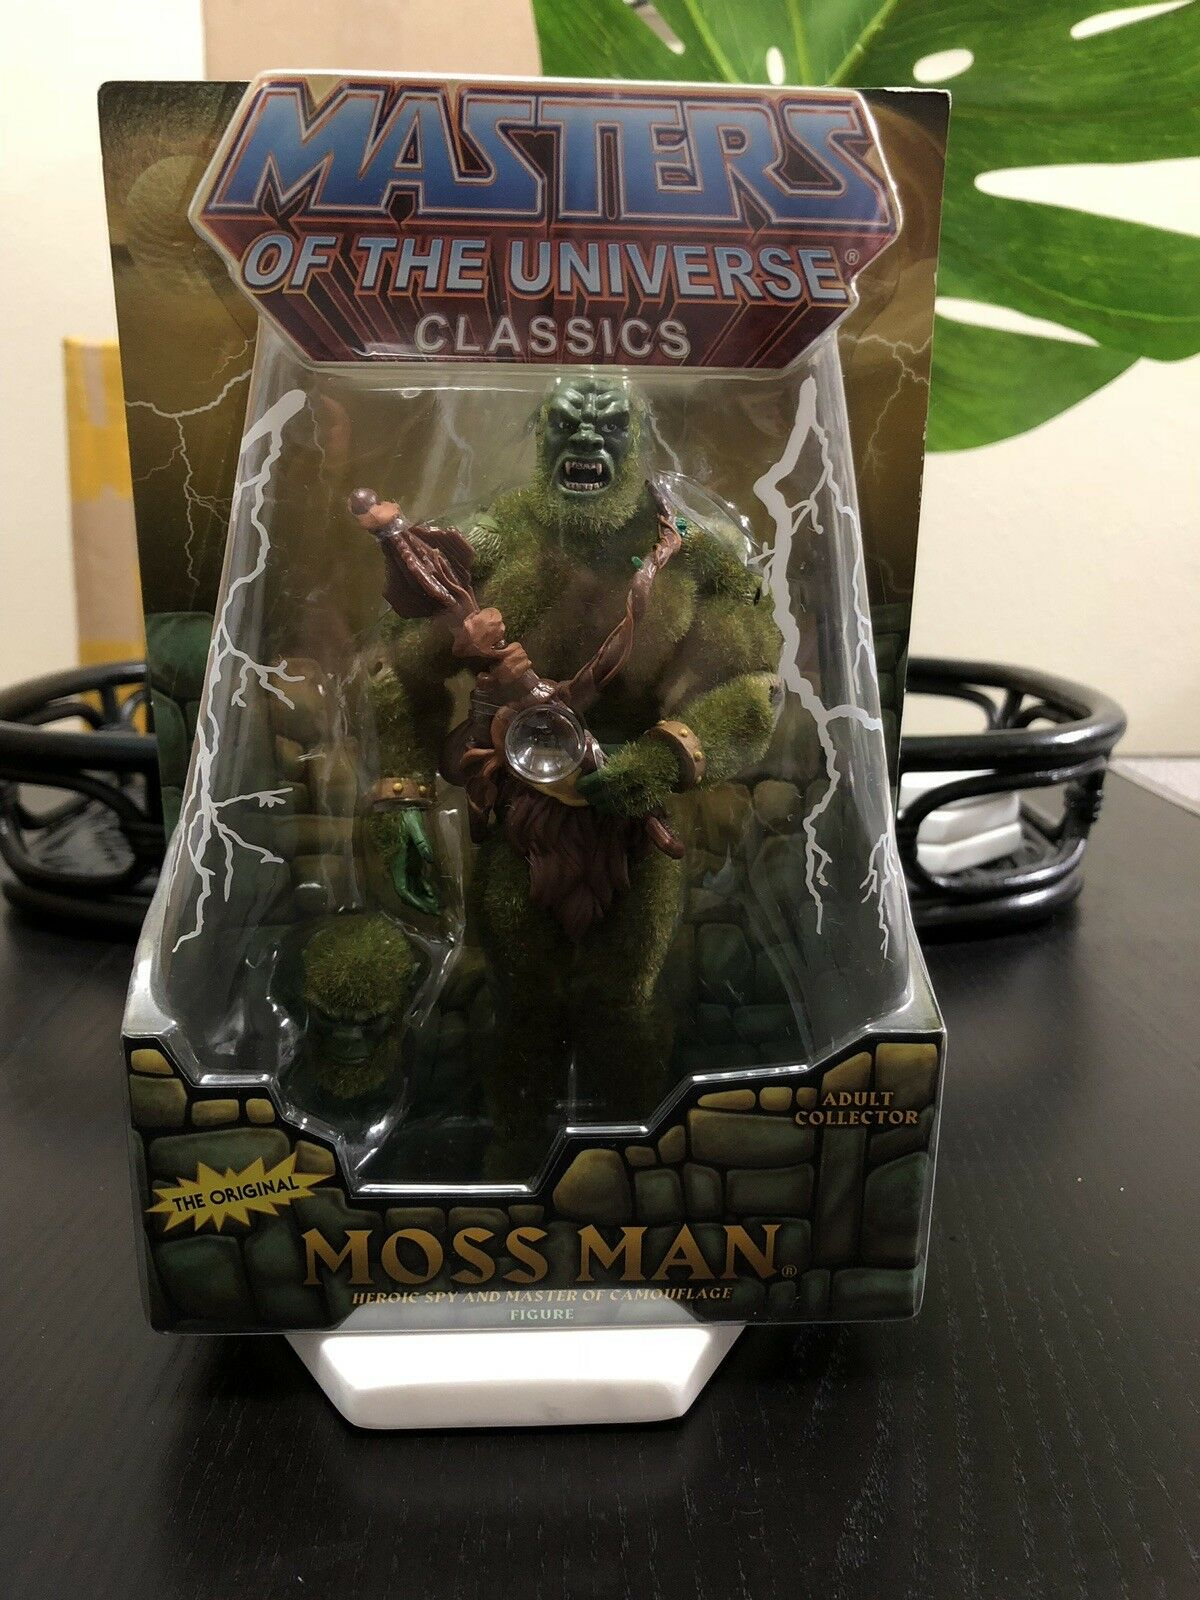 Mattel Masters of the the the Universe Classics Moss Man MOTUC He-Man MOSC 306940